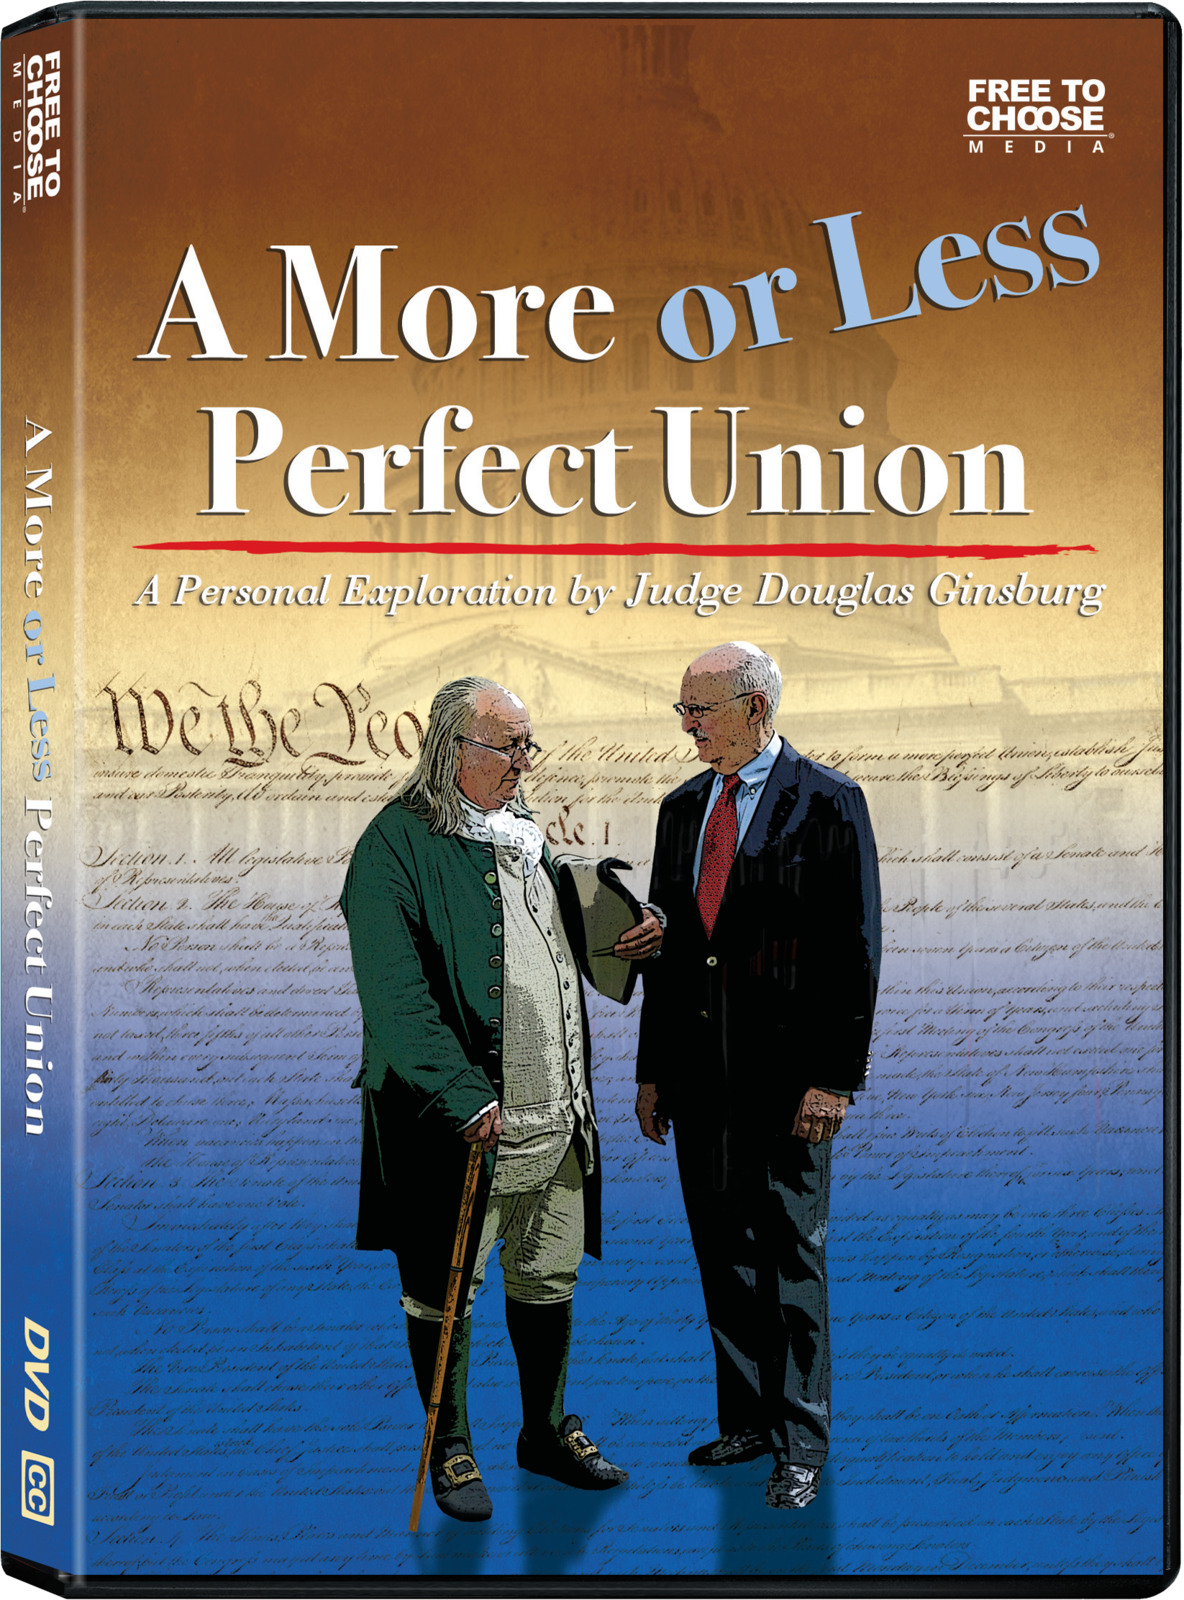 Primary image for A More or Less Perfect Union, A Personal Exploration by Judge Douglas Ginsburg